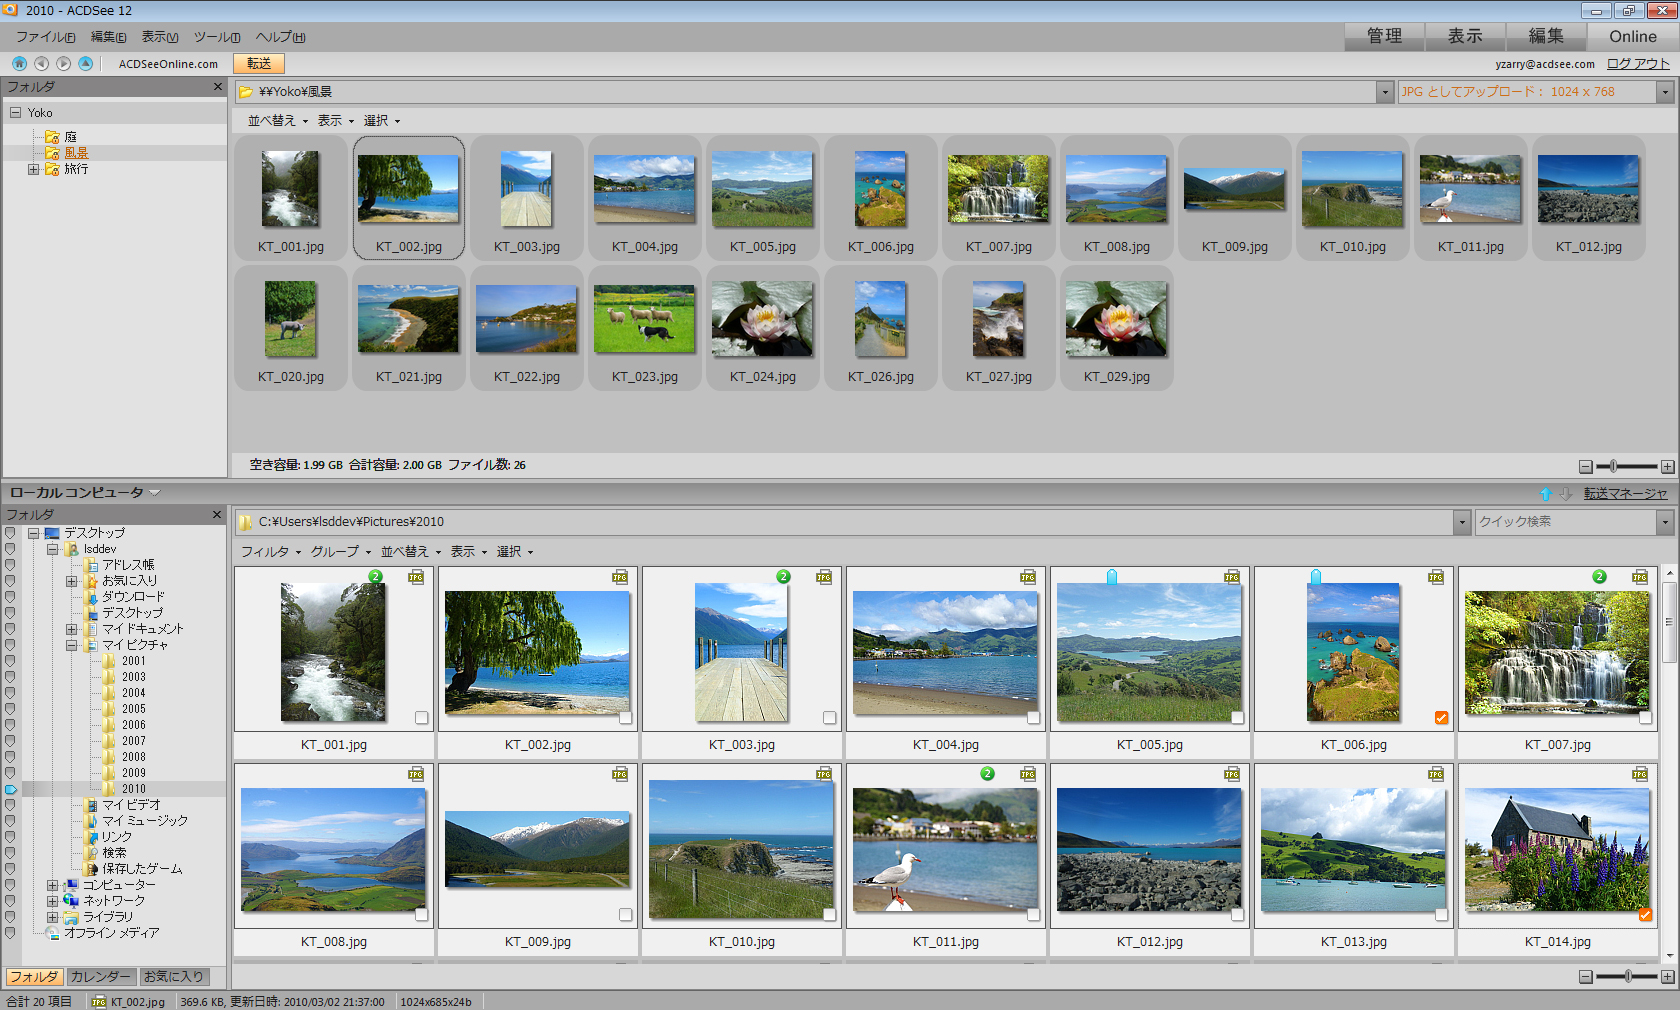 ACDSee Photo Manager v12.0 (build 344) - CORE crack